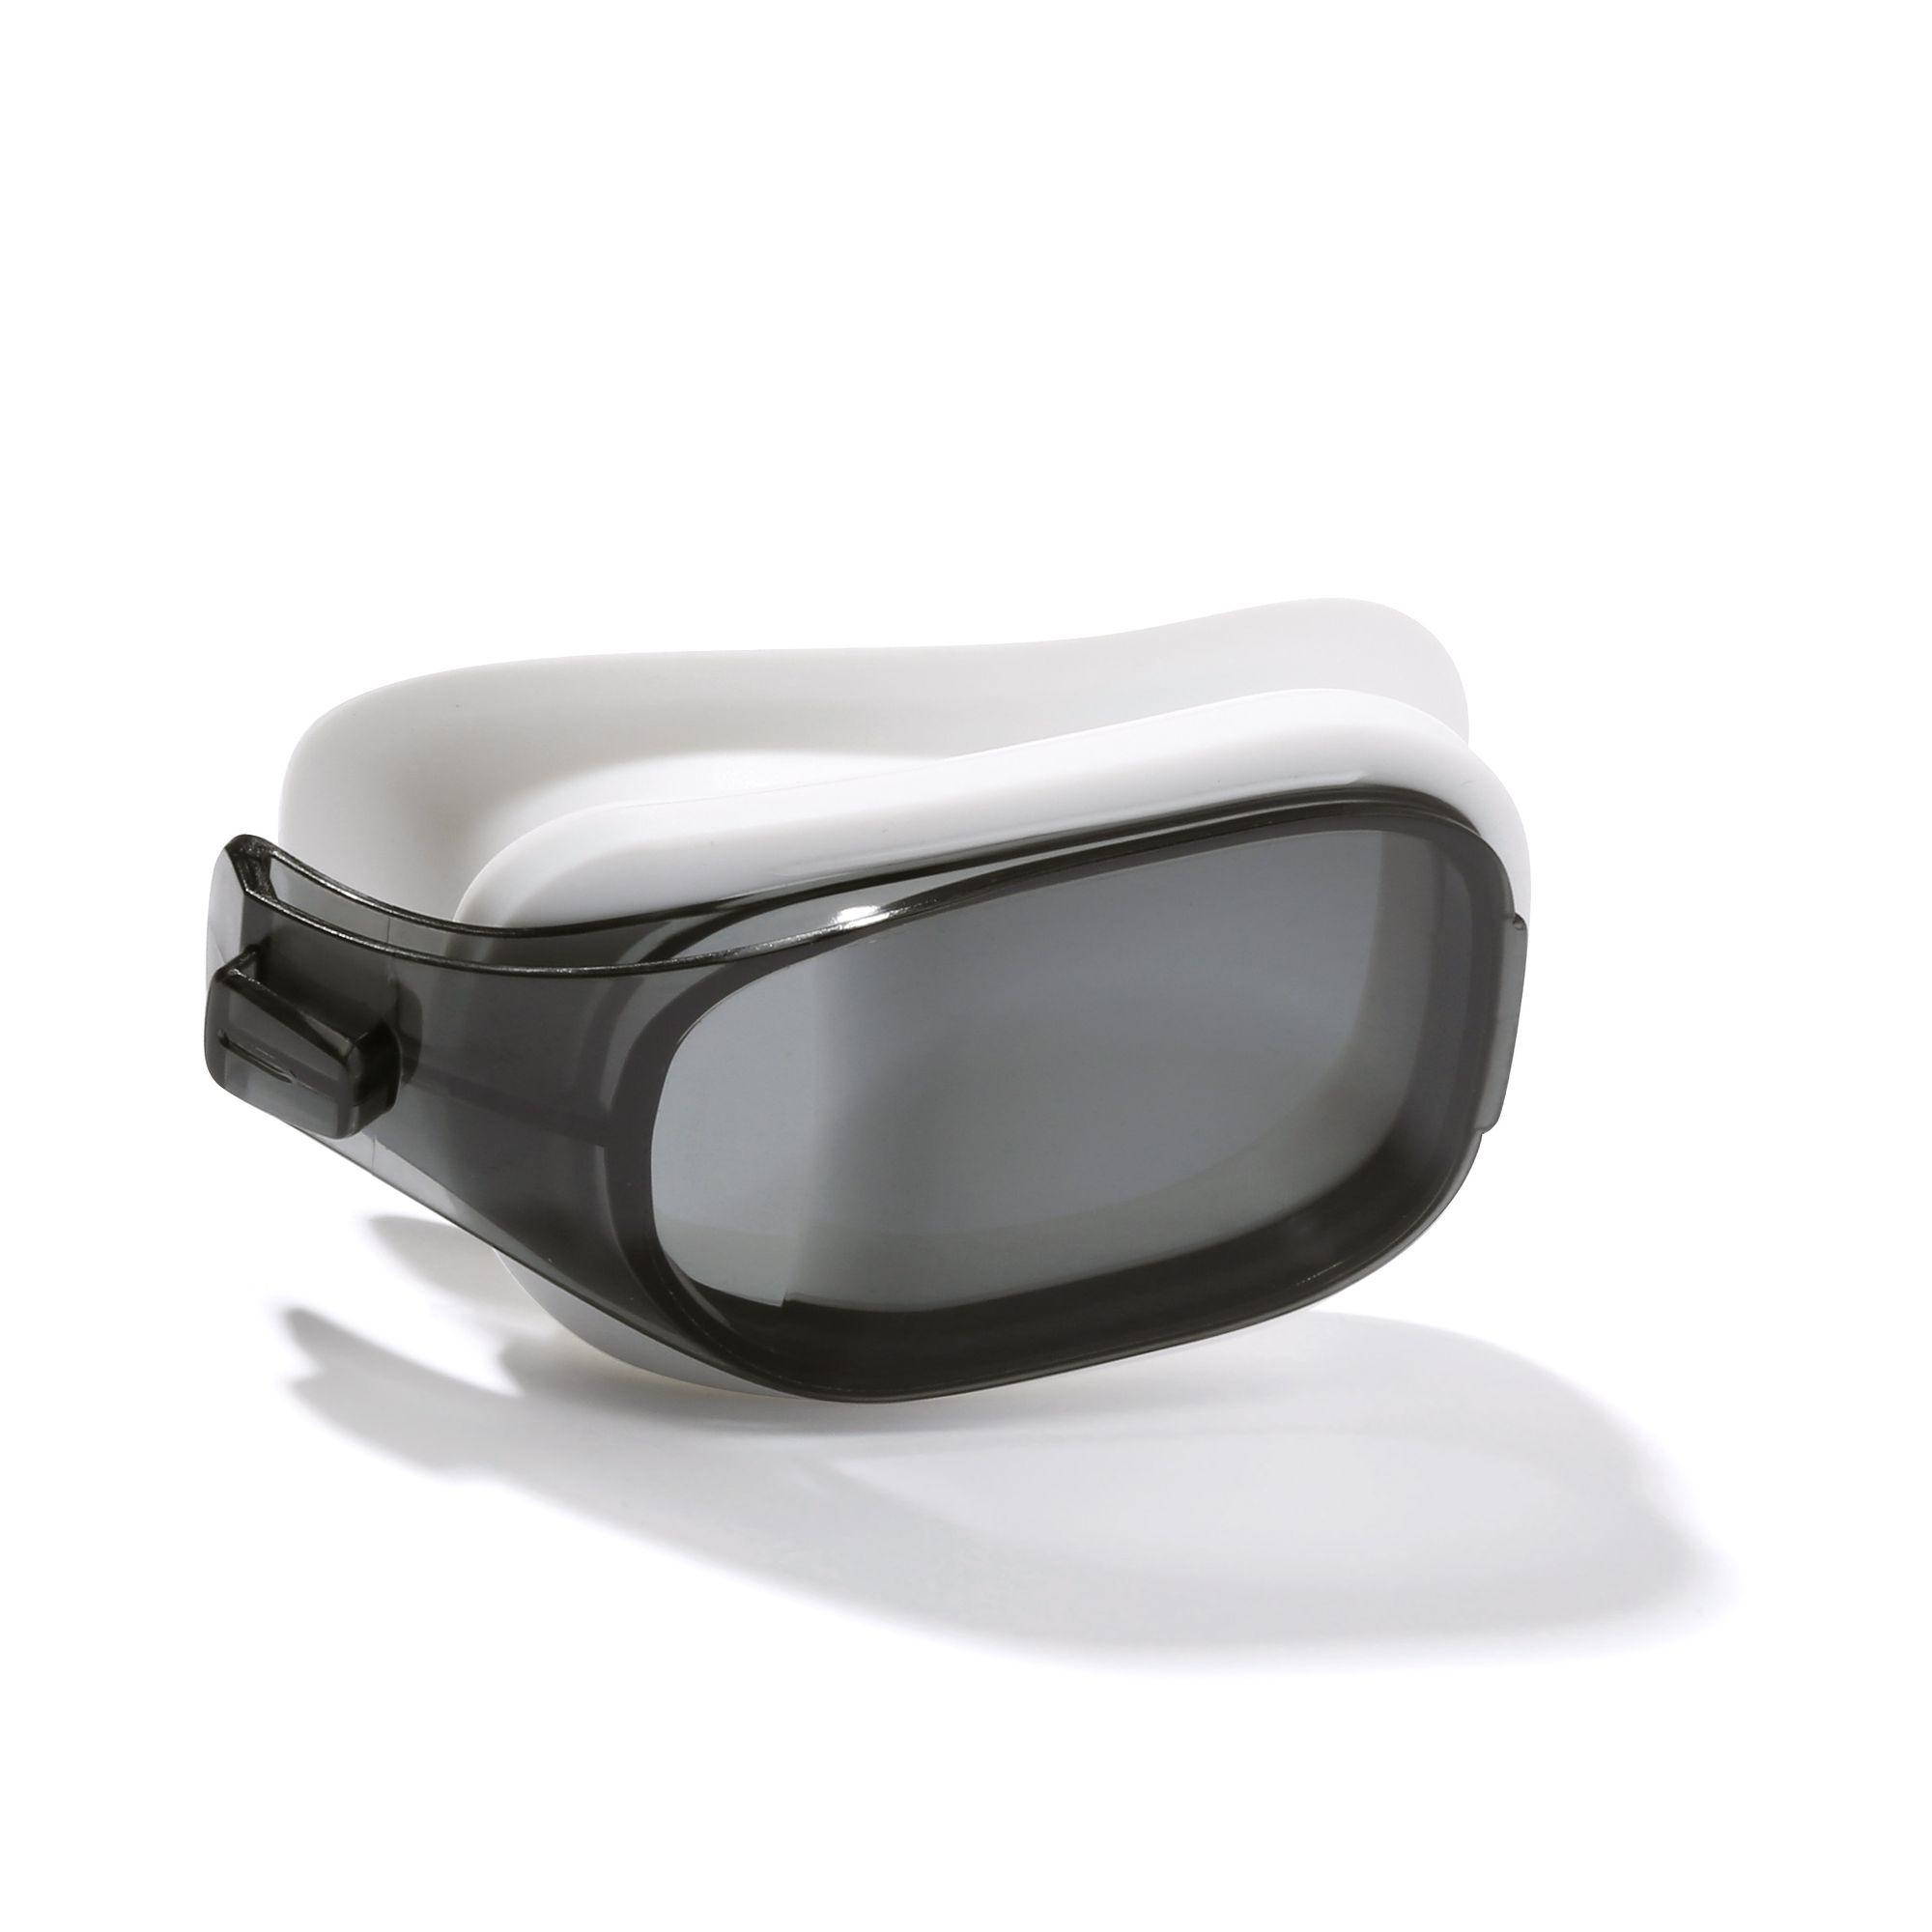 Three smoked lenses for SELFIT 500 swimming goggles Size L